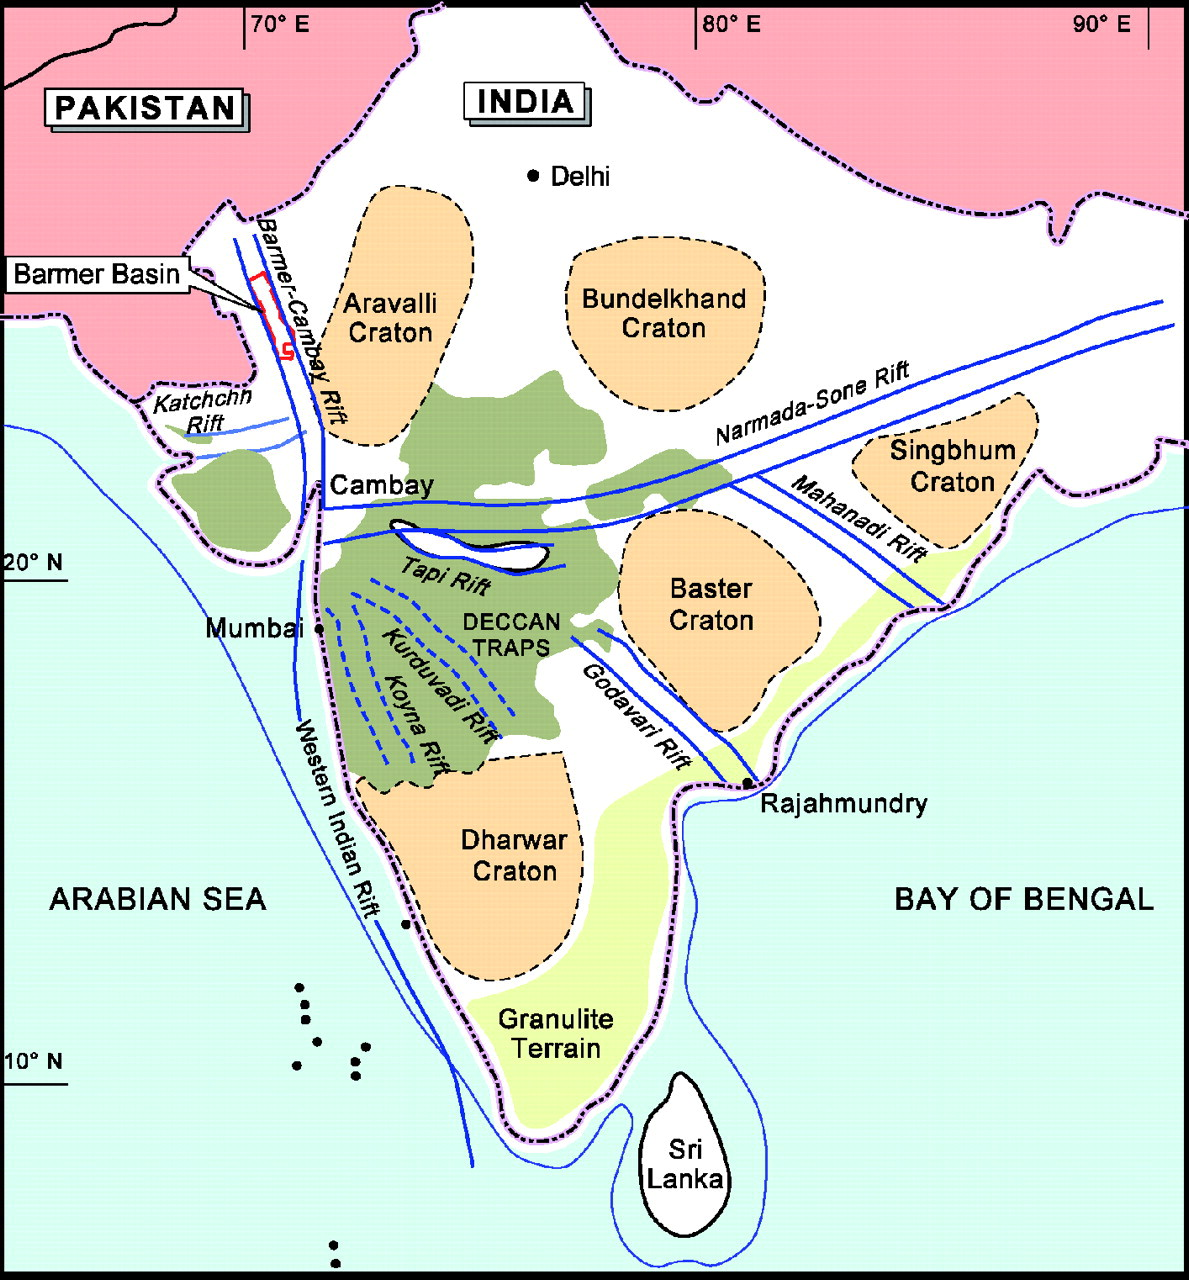 Geological Map Of India.Fig 1 The Geology Of The Barmer Basin Rajasthan India And The